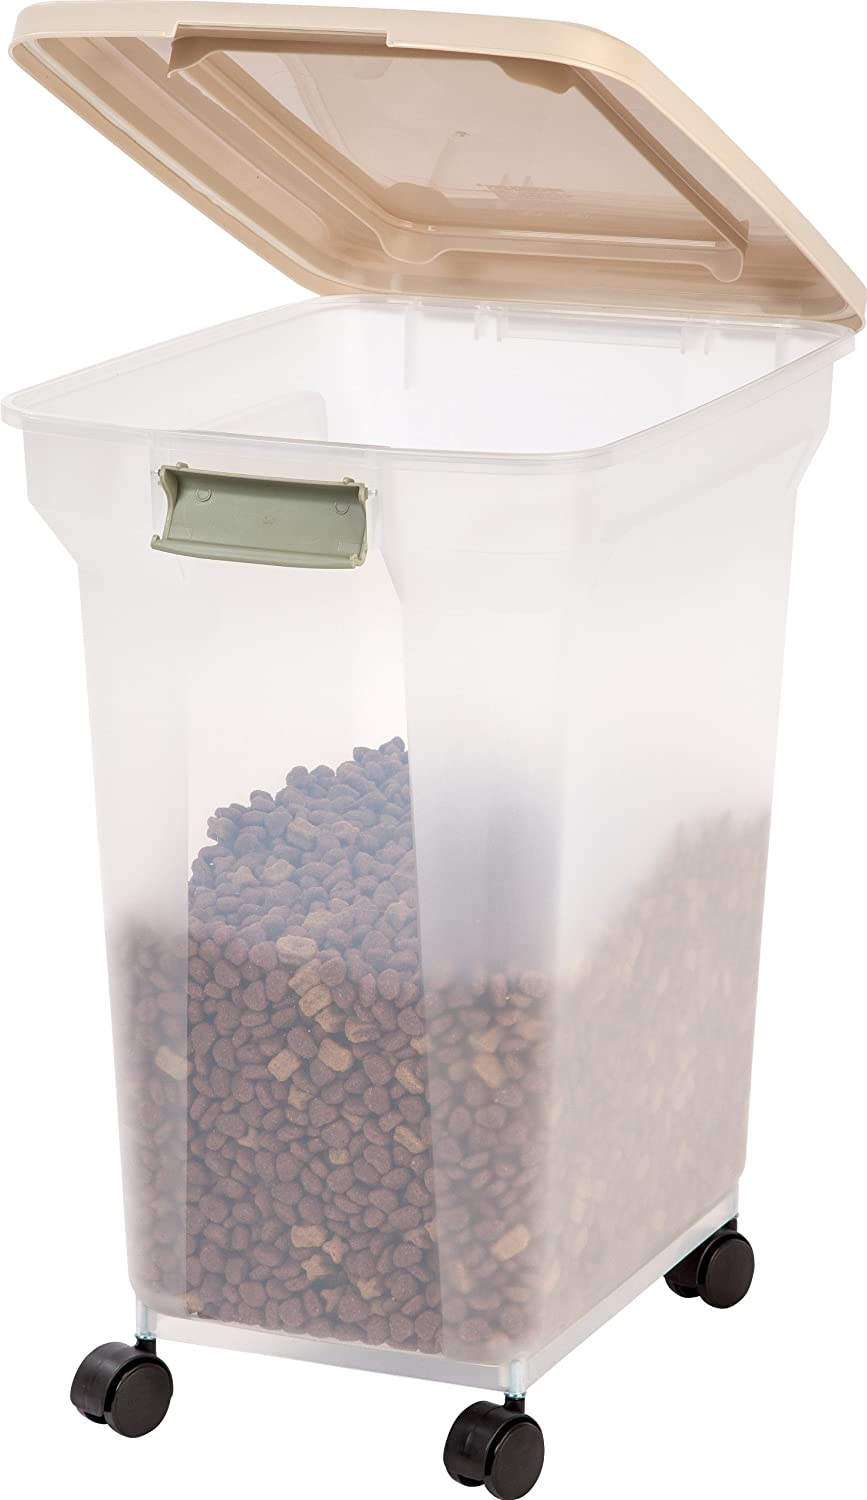 Pet Supplies  IRIS Premium Airtight Pet Food Storage Container 42-Pounds Almond  Pet Food Storage Products  Amazon.com  sc 1 st  Amazon.com & Pet Supplies : IRIS Premium Airtight Pet Food Storage Container 42 ...